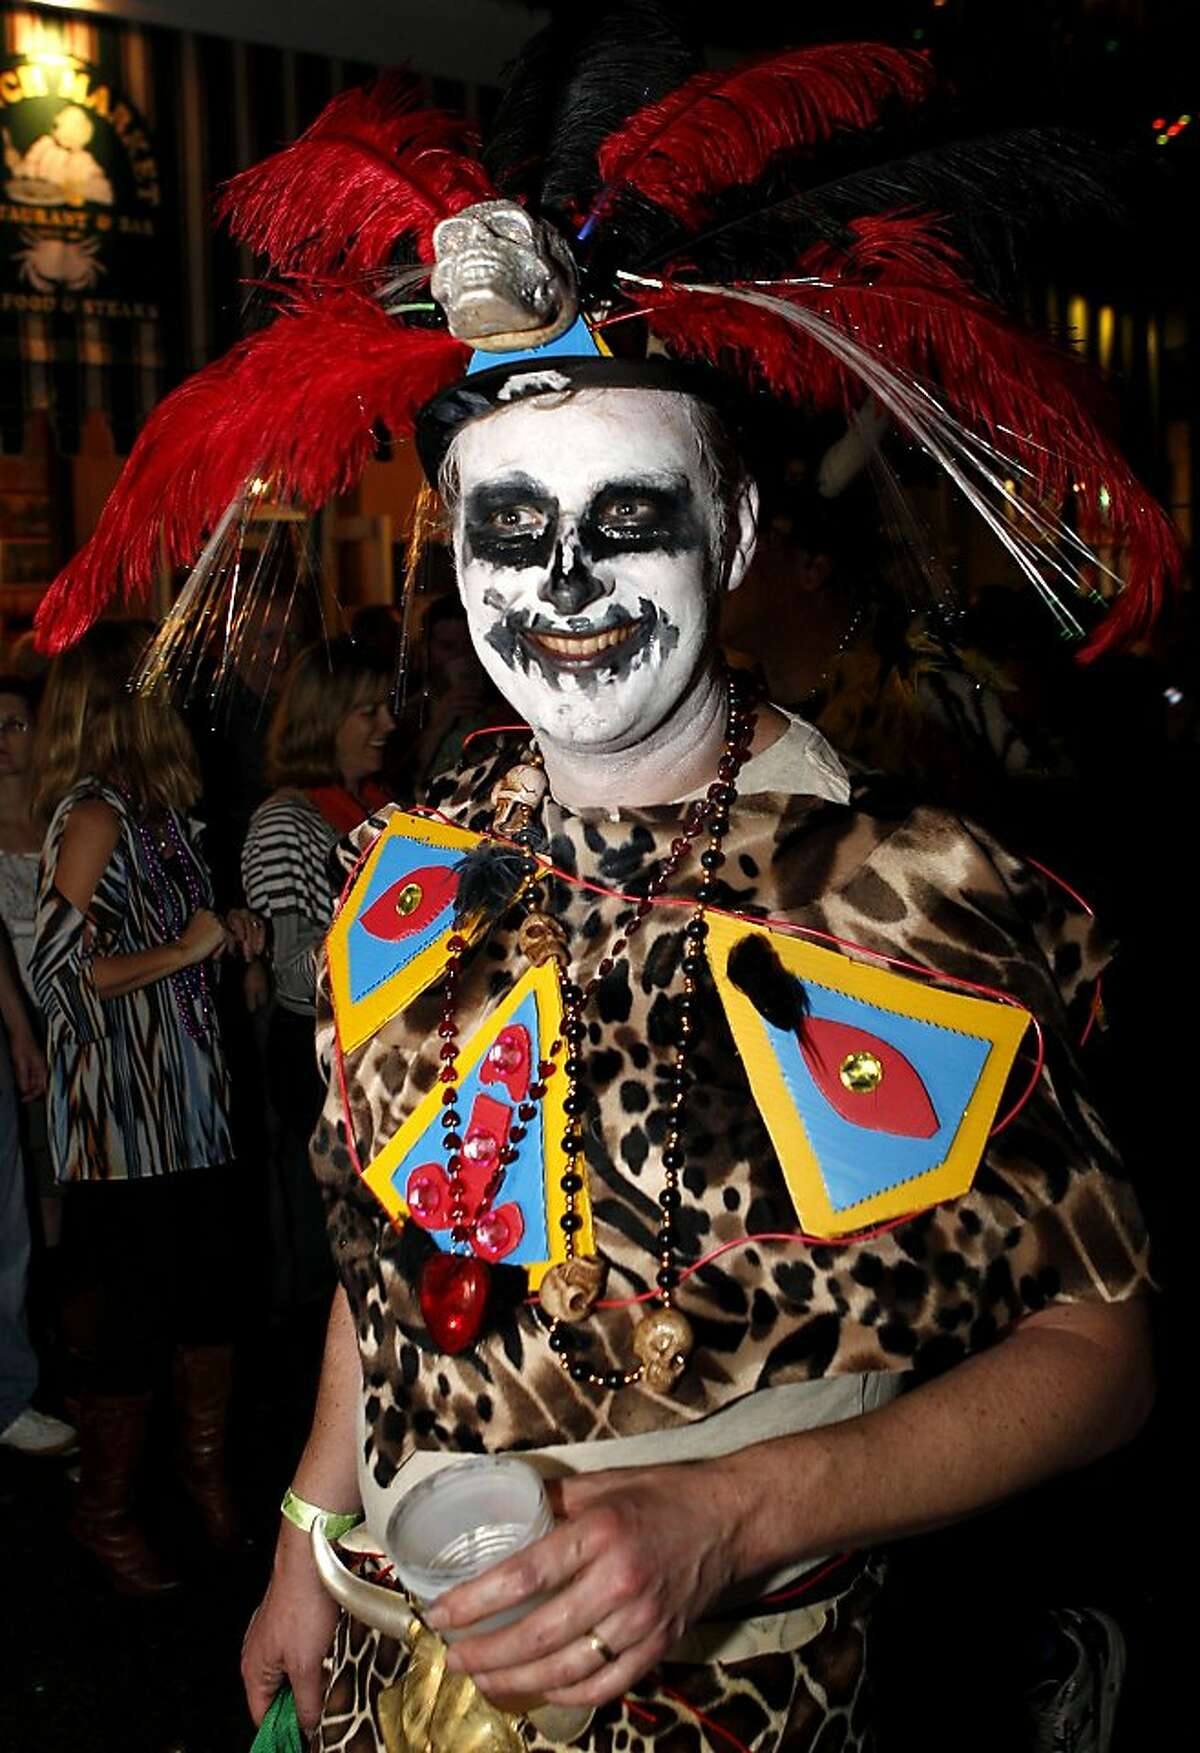 A member of the Krewe du Vieux parades through the streets of the French Quarter celebrating the Mardi Gras season in New Orleans, Saturday, Feb. 4, 2012. The parade is one of the earliest of the Mardi Gras season and is known for its satirical themes.(AP Photo/Jonathan Bachman)